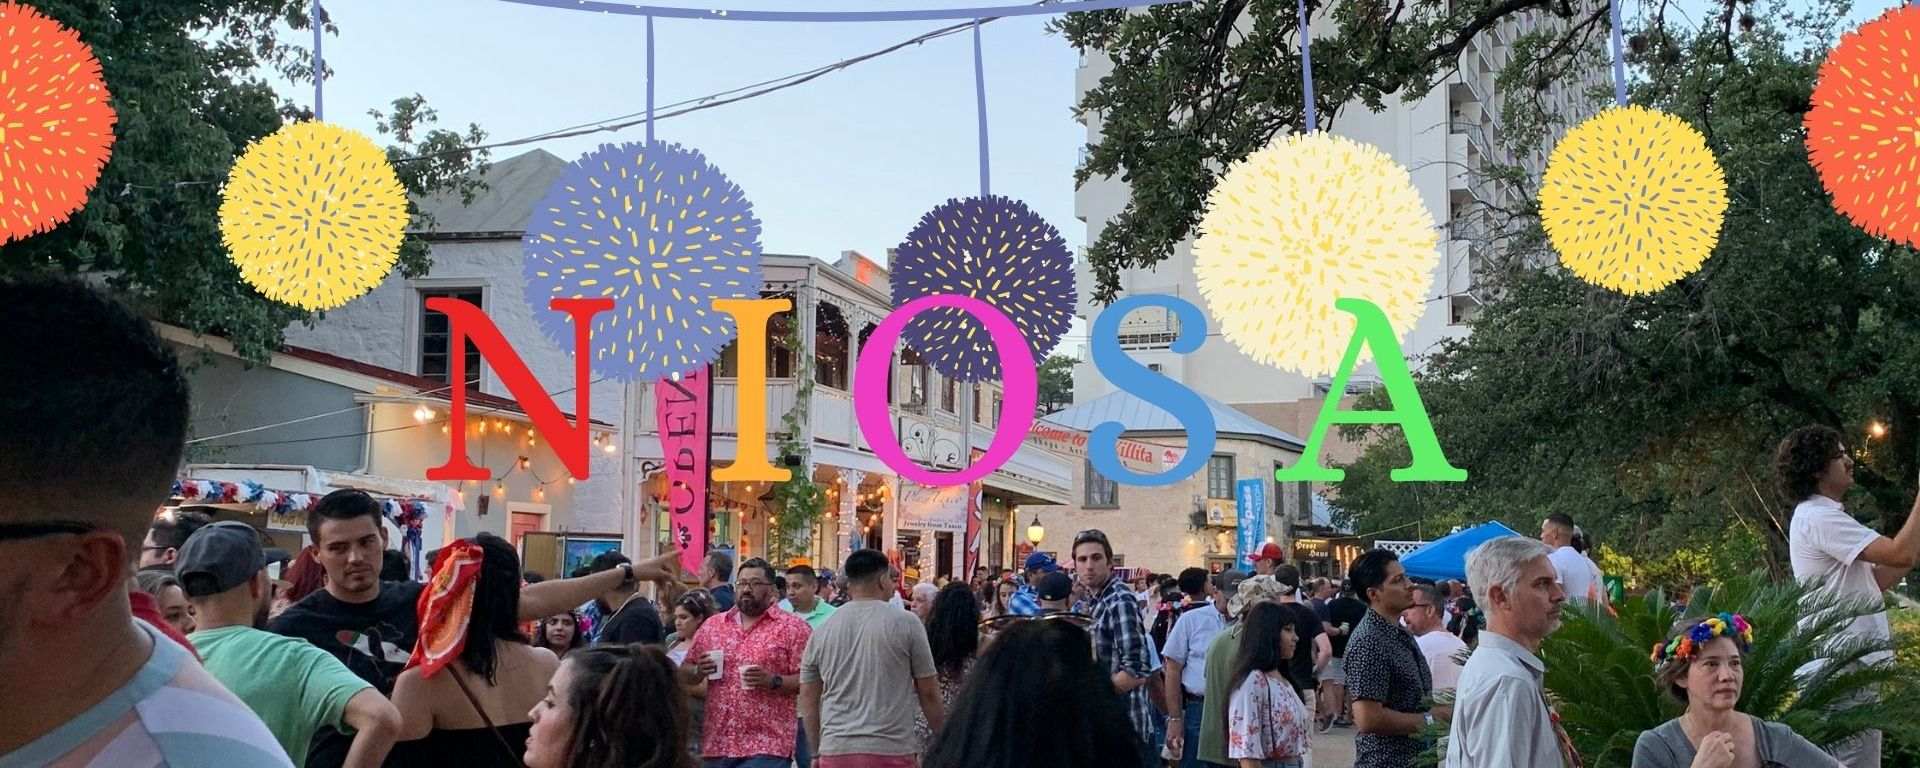 A crowd of people at the festival with the text NIOSA in colorful lettering with colorful pom poms going across the top.